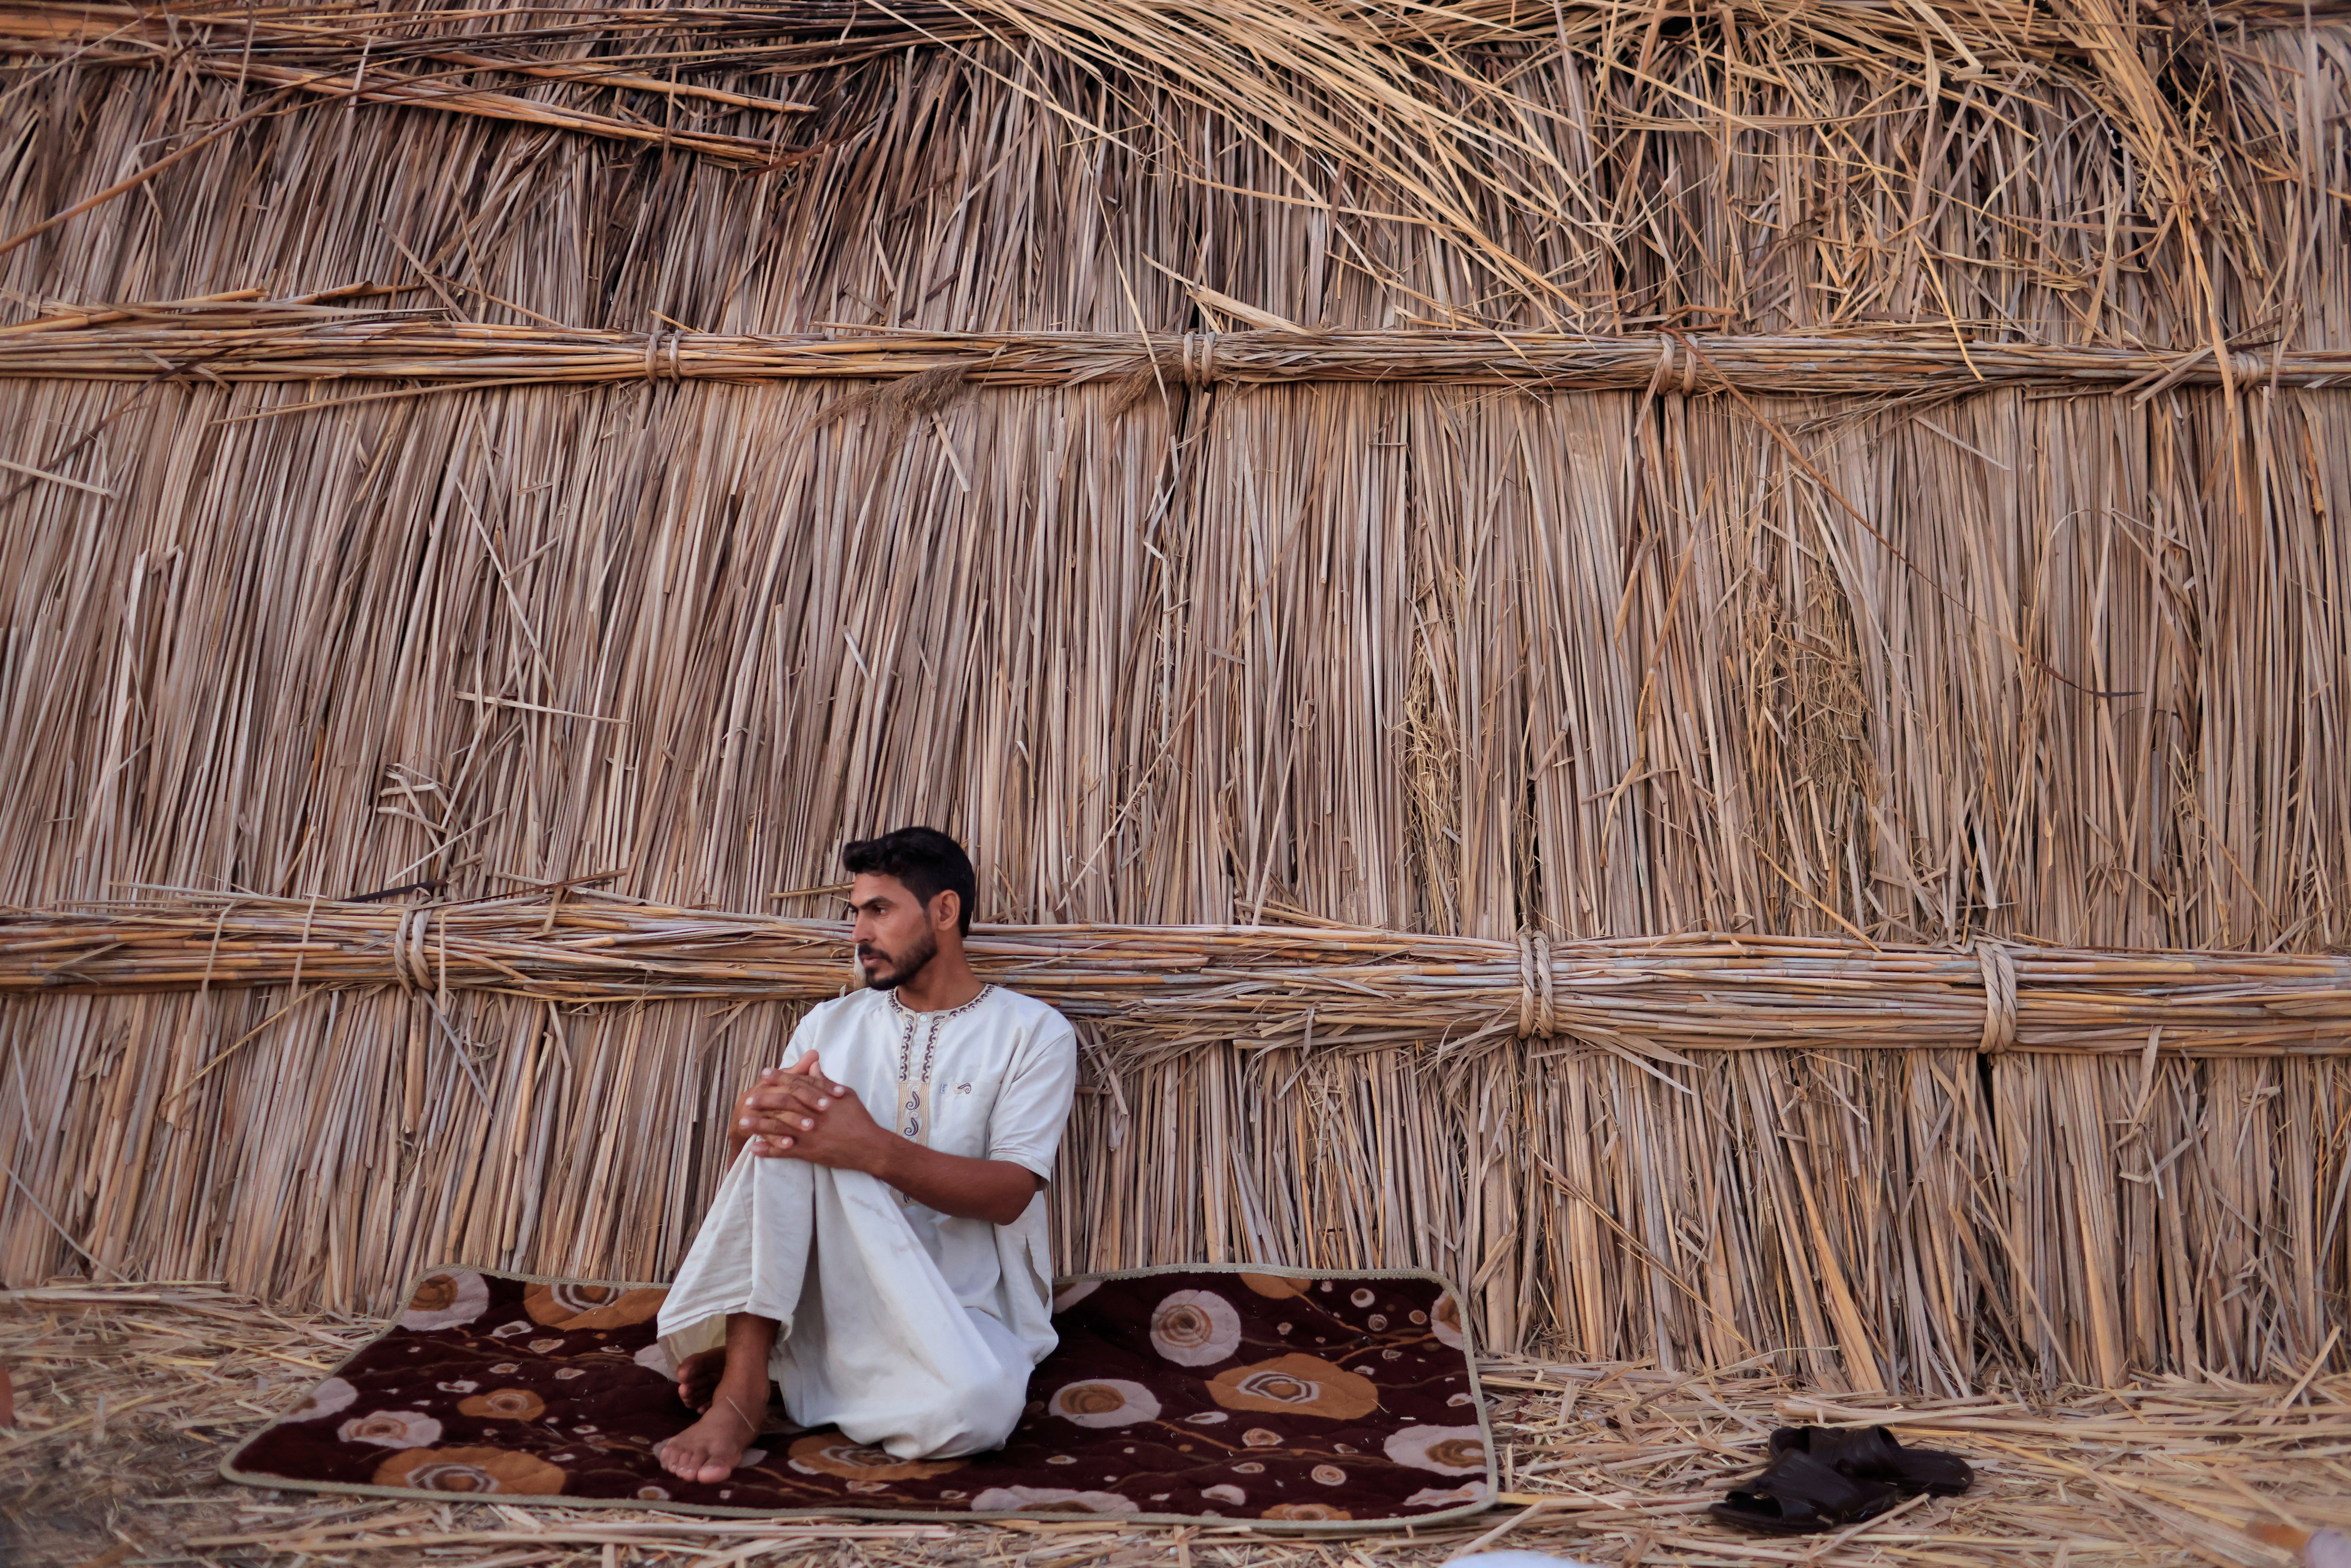 Sabah Thamer al-Baher sits at his home in the Chebayesh marsh, Dhi Qar province, Iraq, August 15, 2021. Iraq's 2020-2021 rainfall season was the second driest in 40 years, according to the United Nations, causing the salinity of the wetlands to rise to dangerous levels. Animals fell sick and died, and Baher was forced to buy fresh drinking water for his own herd of around 20 buffaloes, his only source of income. Another drought is predicted for 2023 as climate change, pollution and upstream damming keep Iraq trapped in a cycle of recurring water crises.